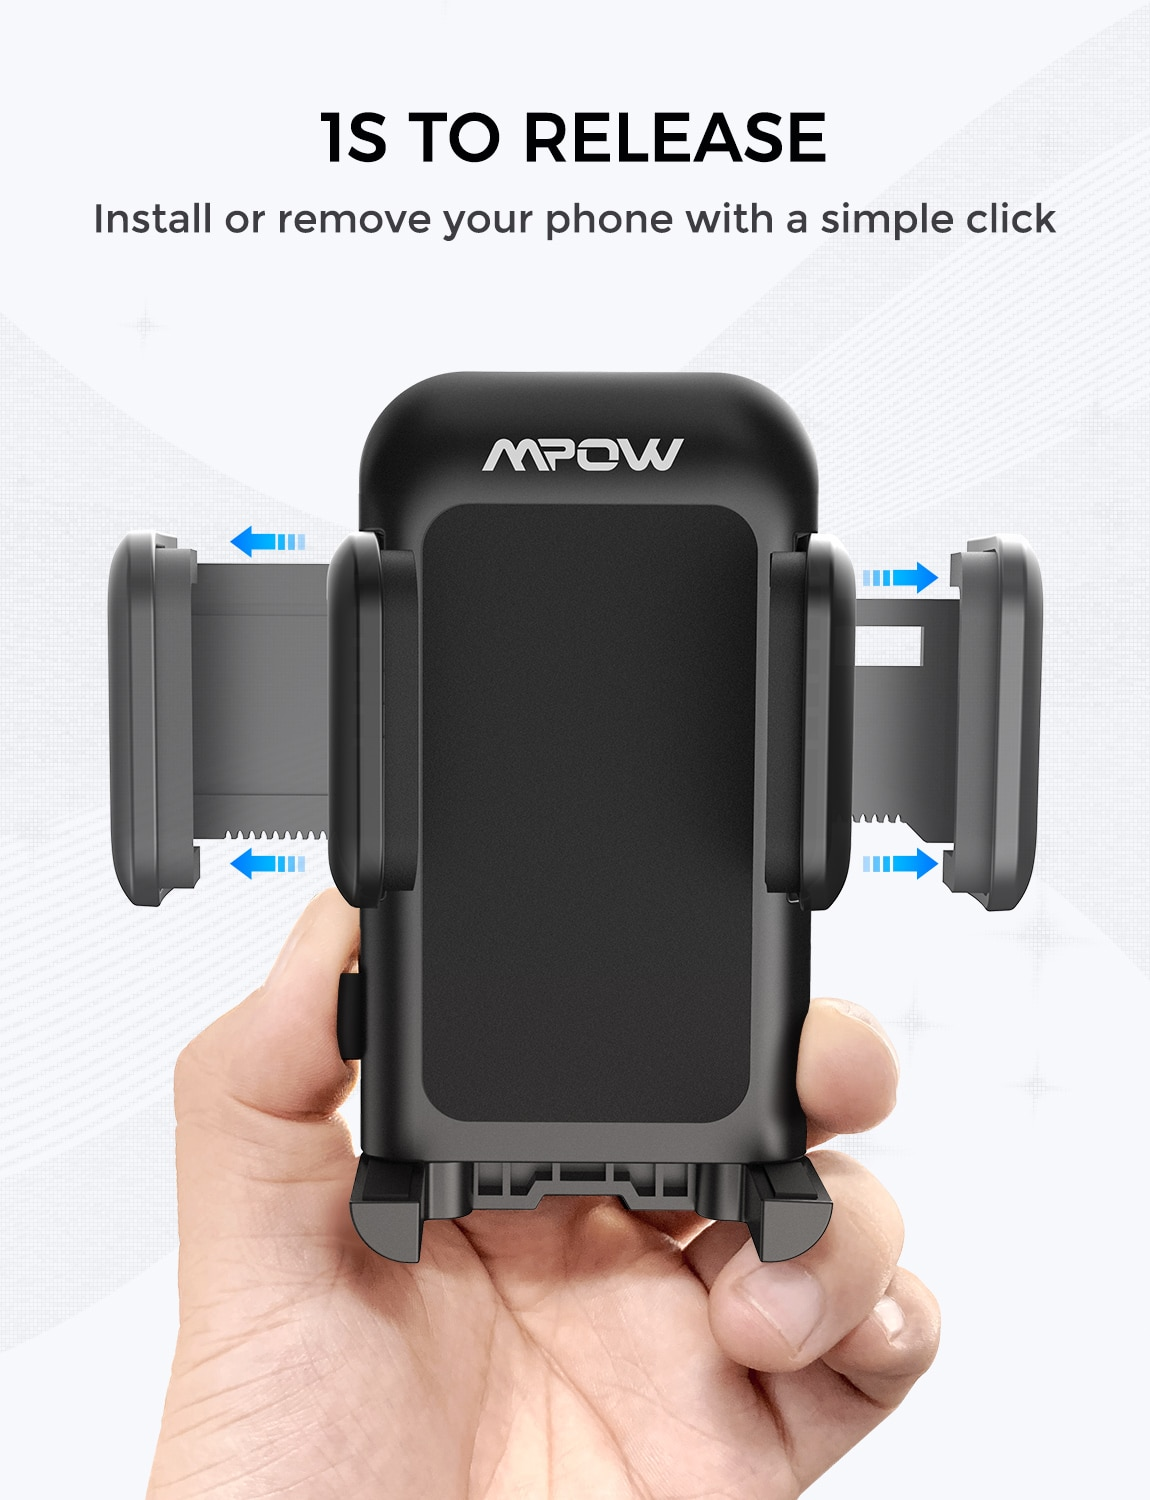 Habb4ea3e59004b958a4b7e67a8518050d - Mpow MCM3 CD Slot Car Phone Holder Car Mount Holder Stand 360 Rotation Mobile Phone Holder Stand for iphone 12 XS Samsung Huawei